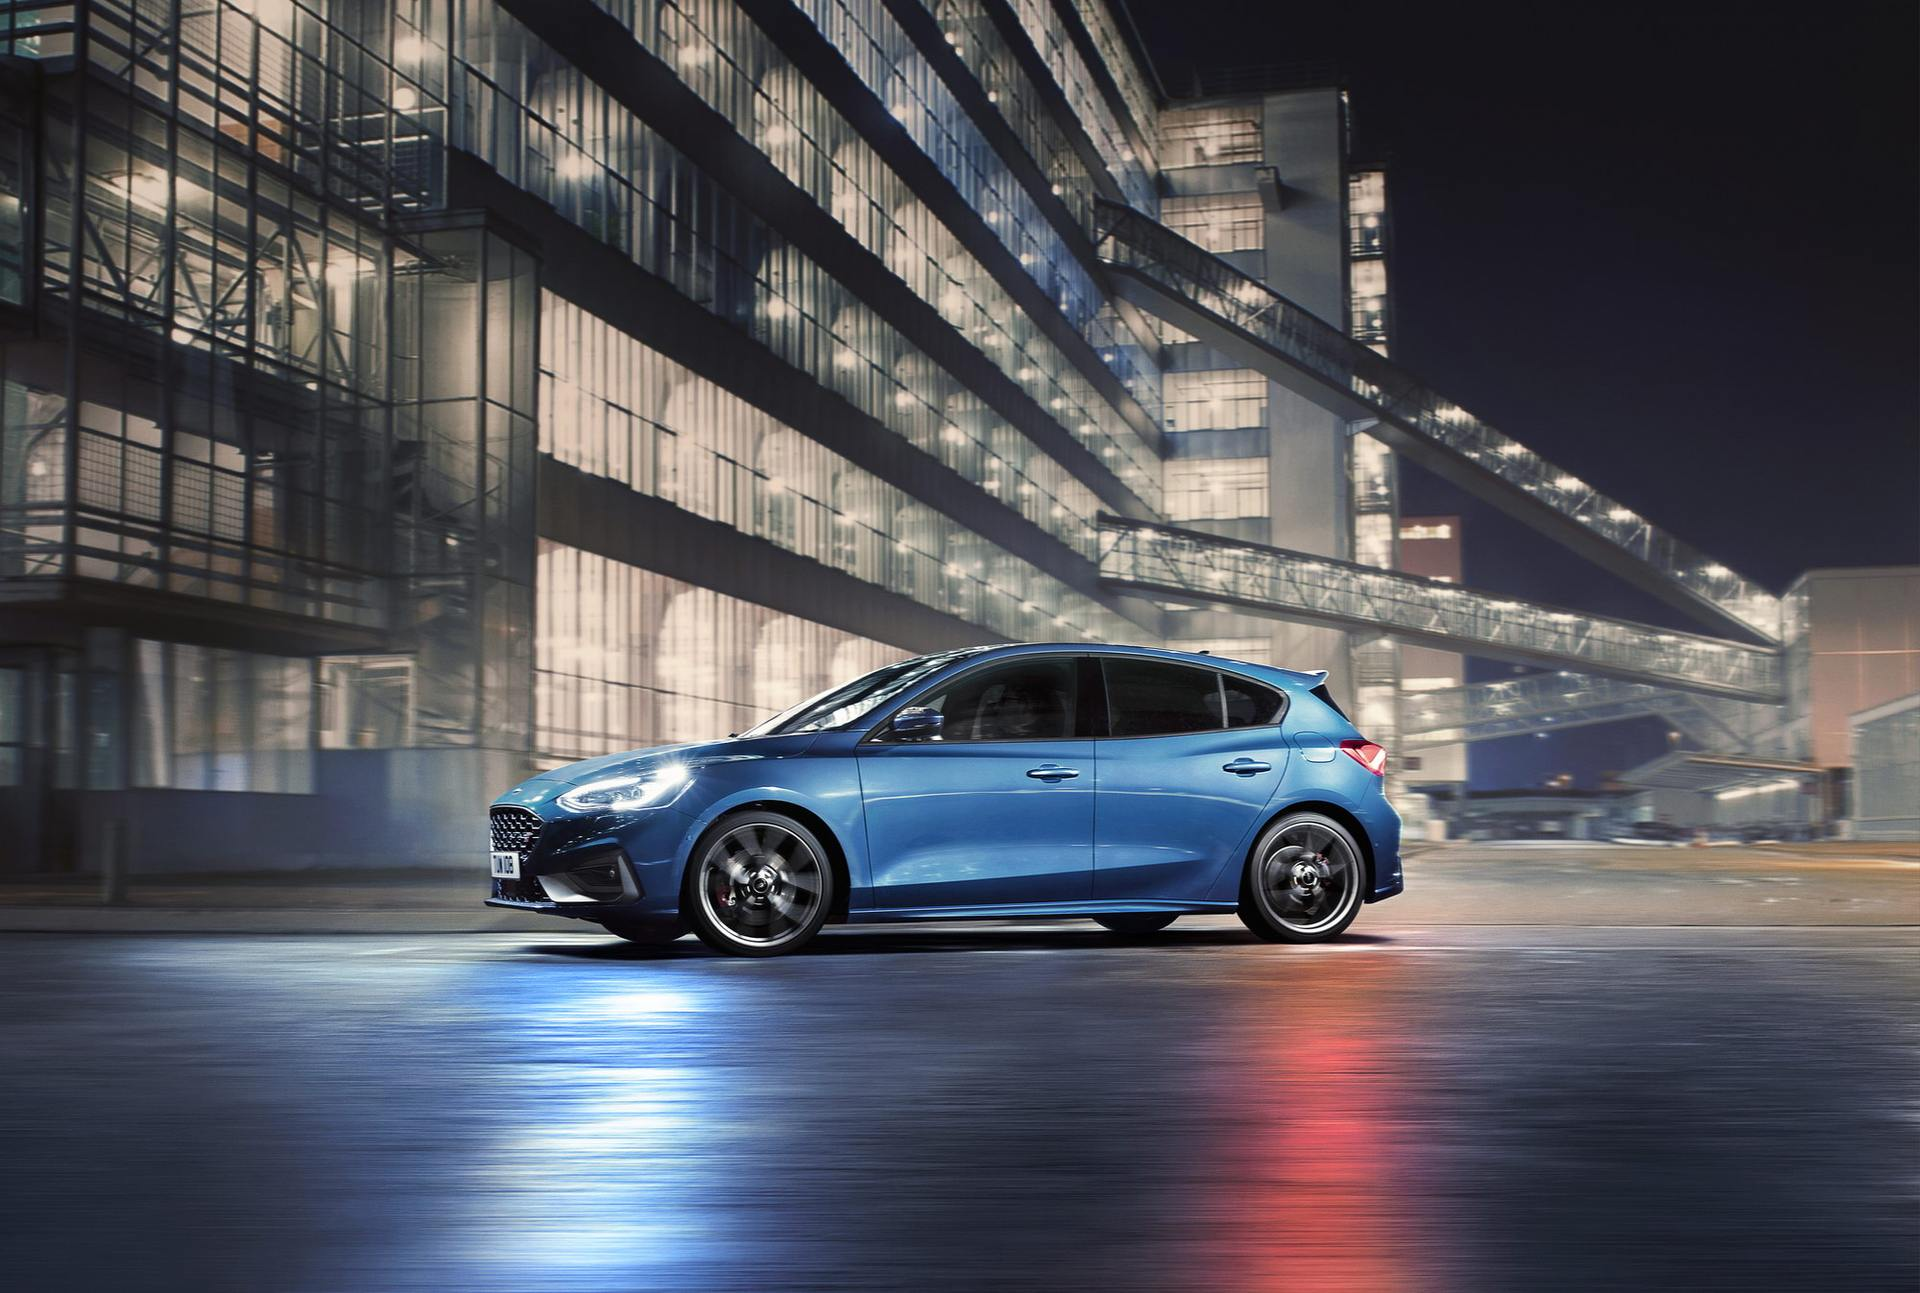 2020 Ford Focus St Side Wallpaper 16 Hd Wallpapers